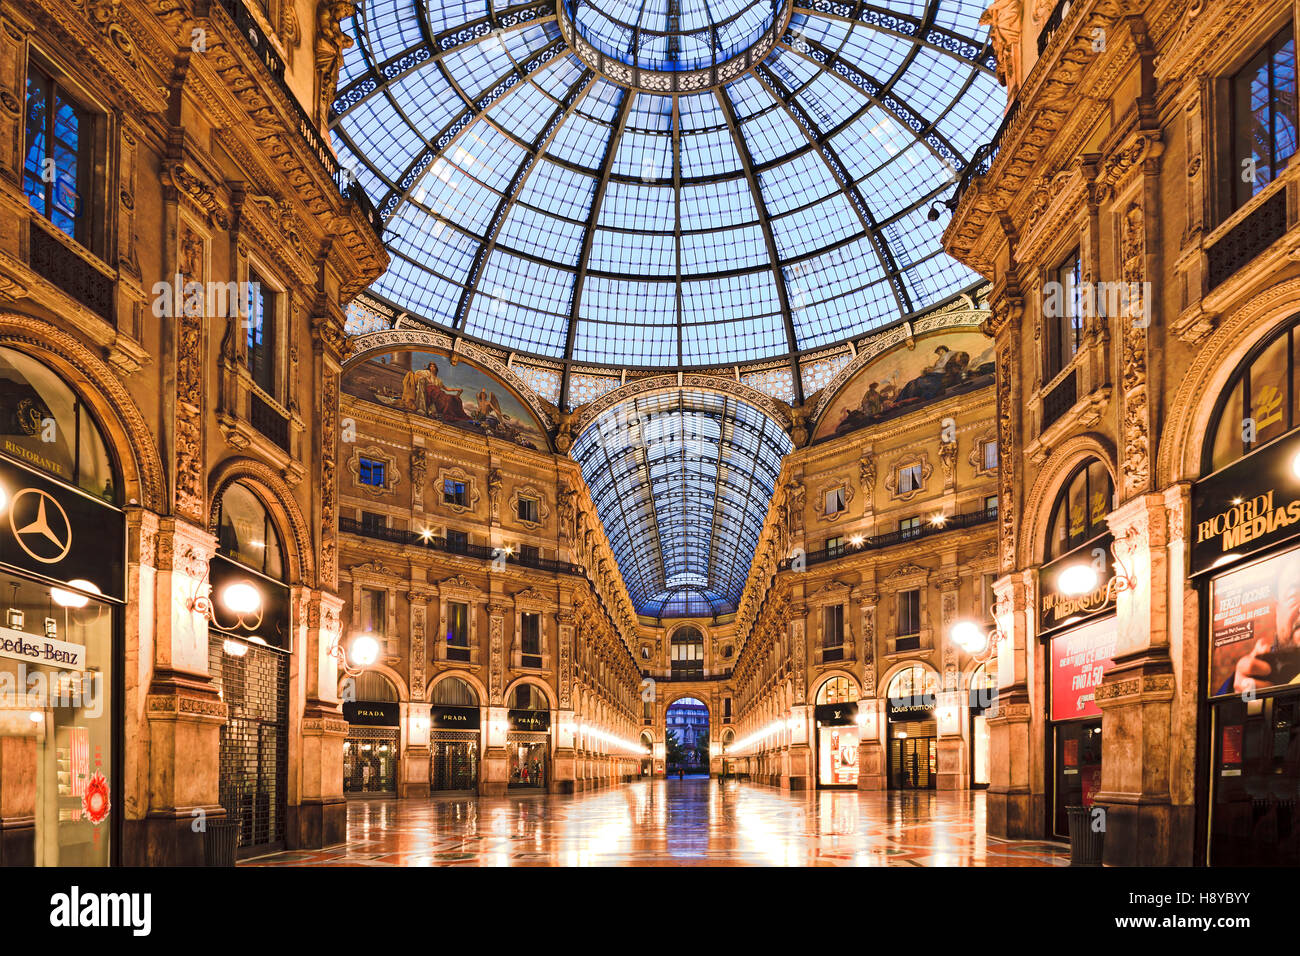 Shopping mall galleria stock photos shopping mall for Milan outlet shopping